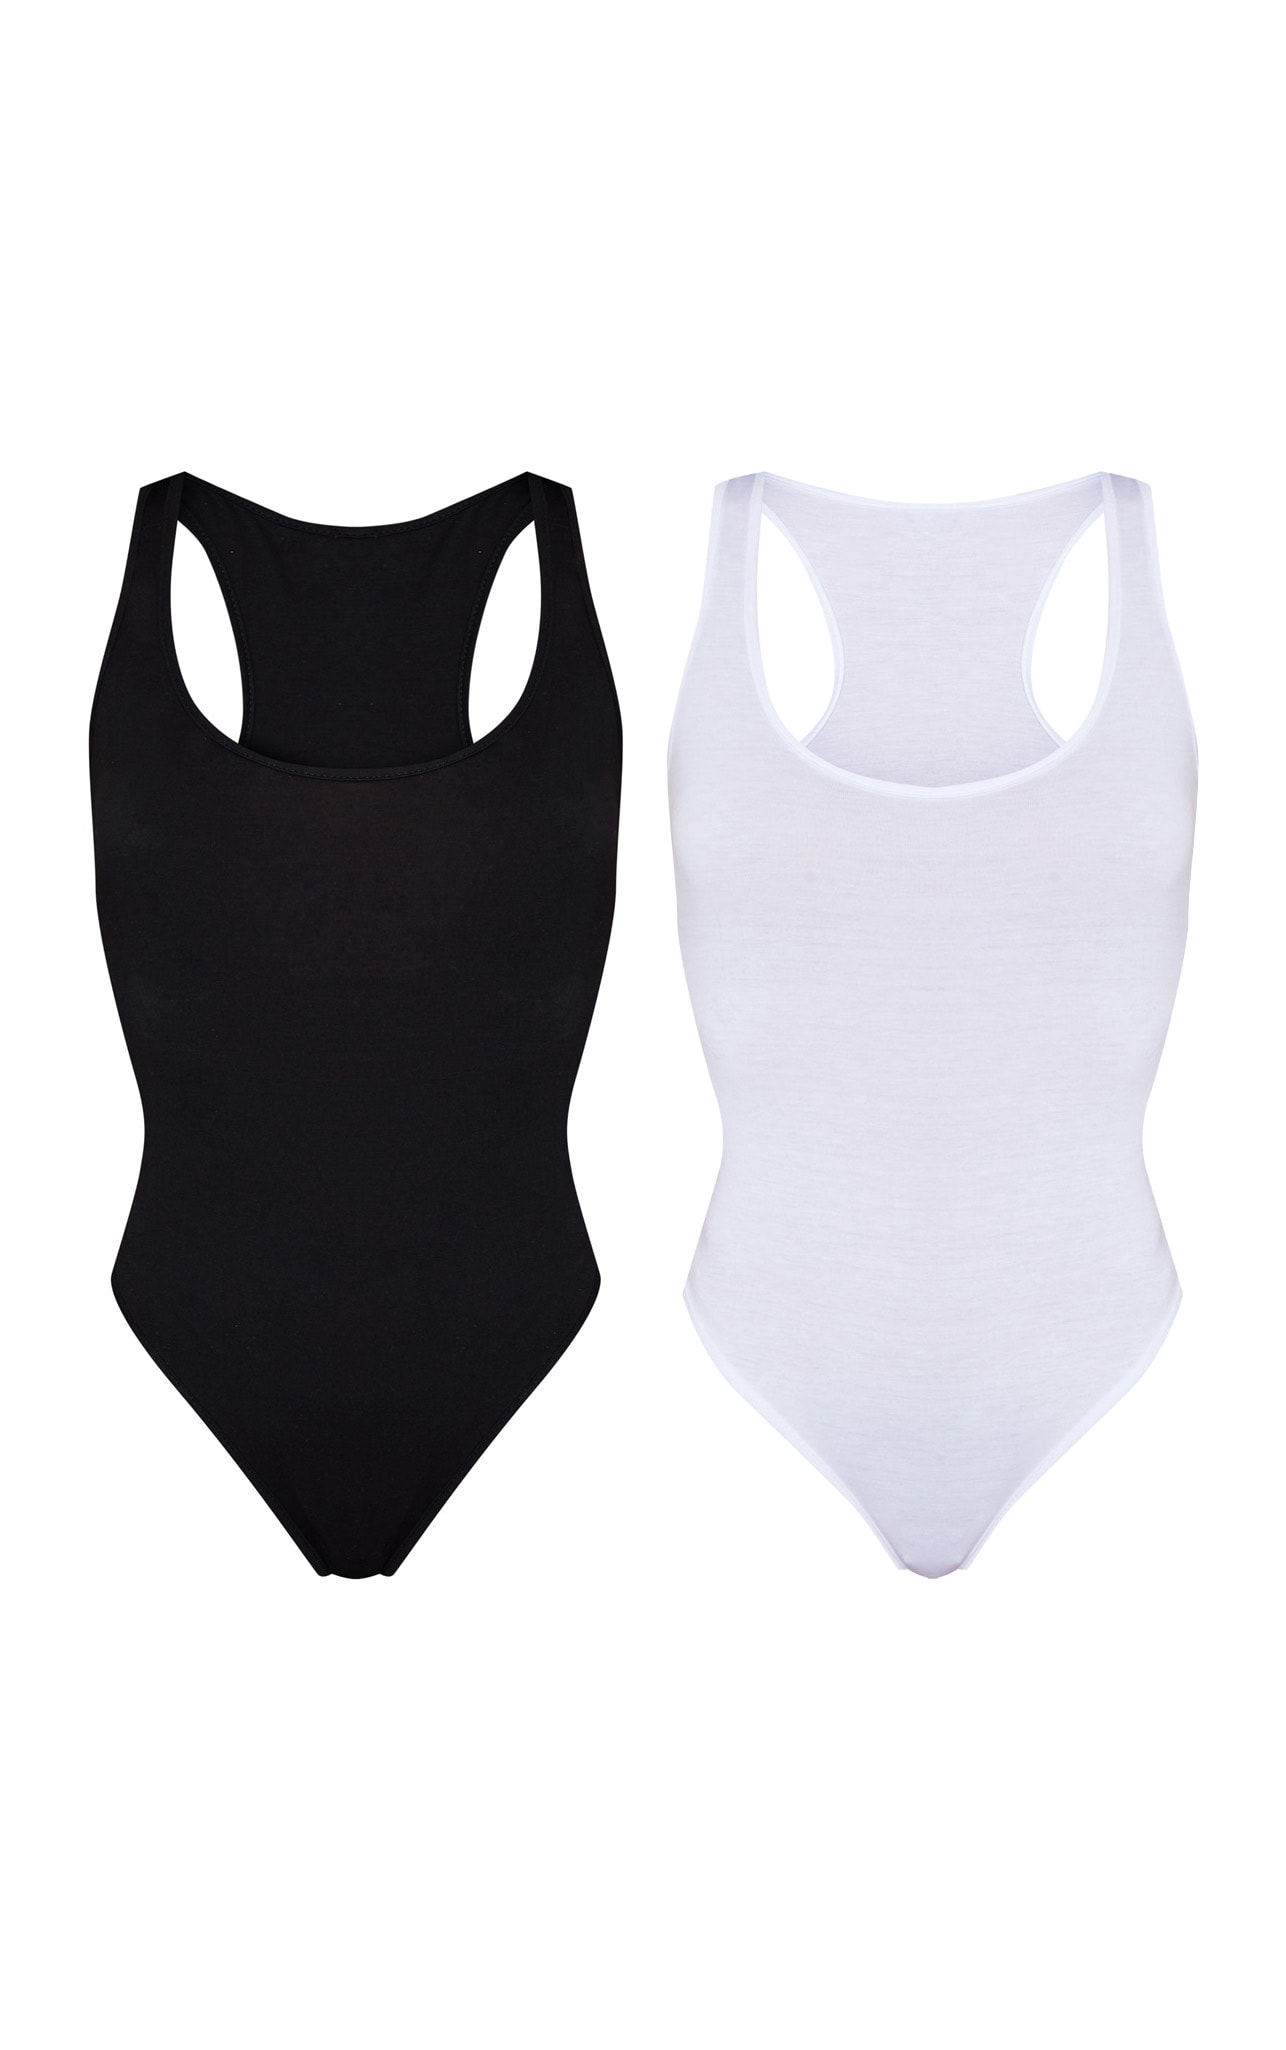 Basic Black & White Racer Back Bodysuit 2 Pack 5